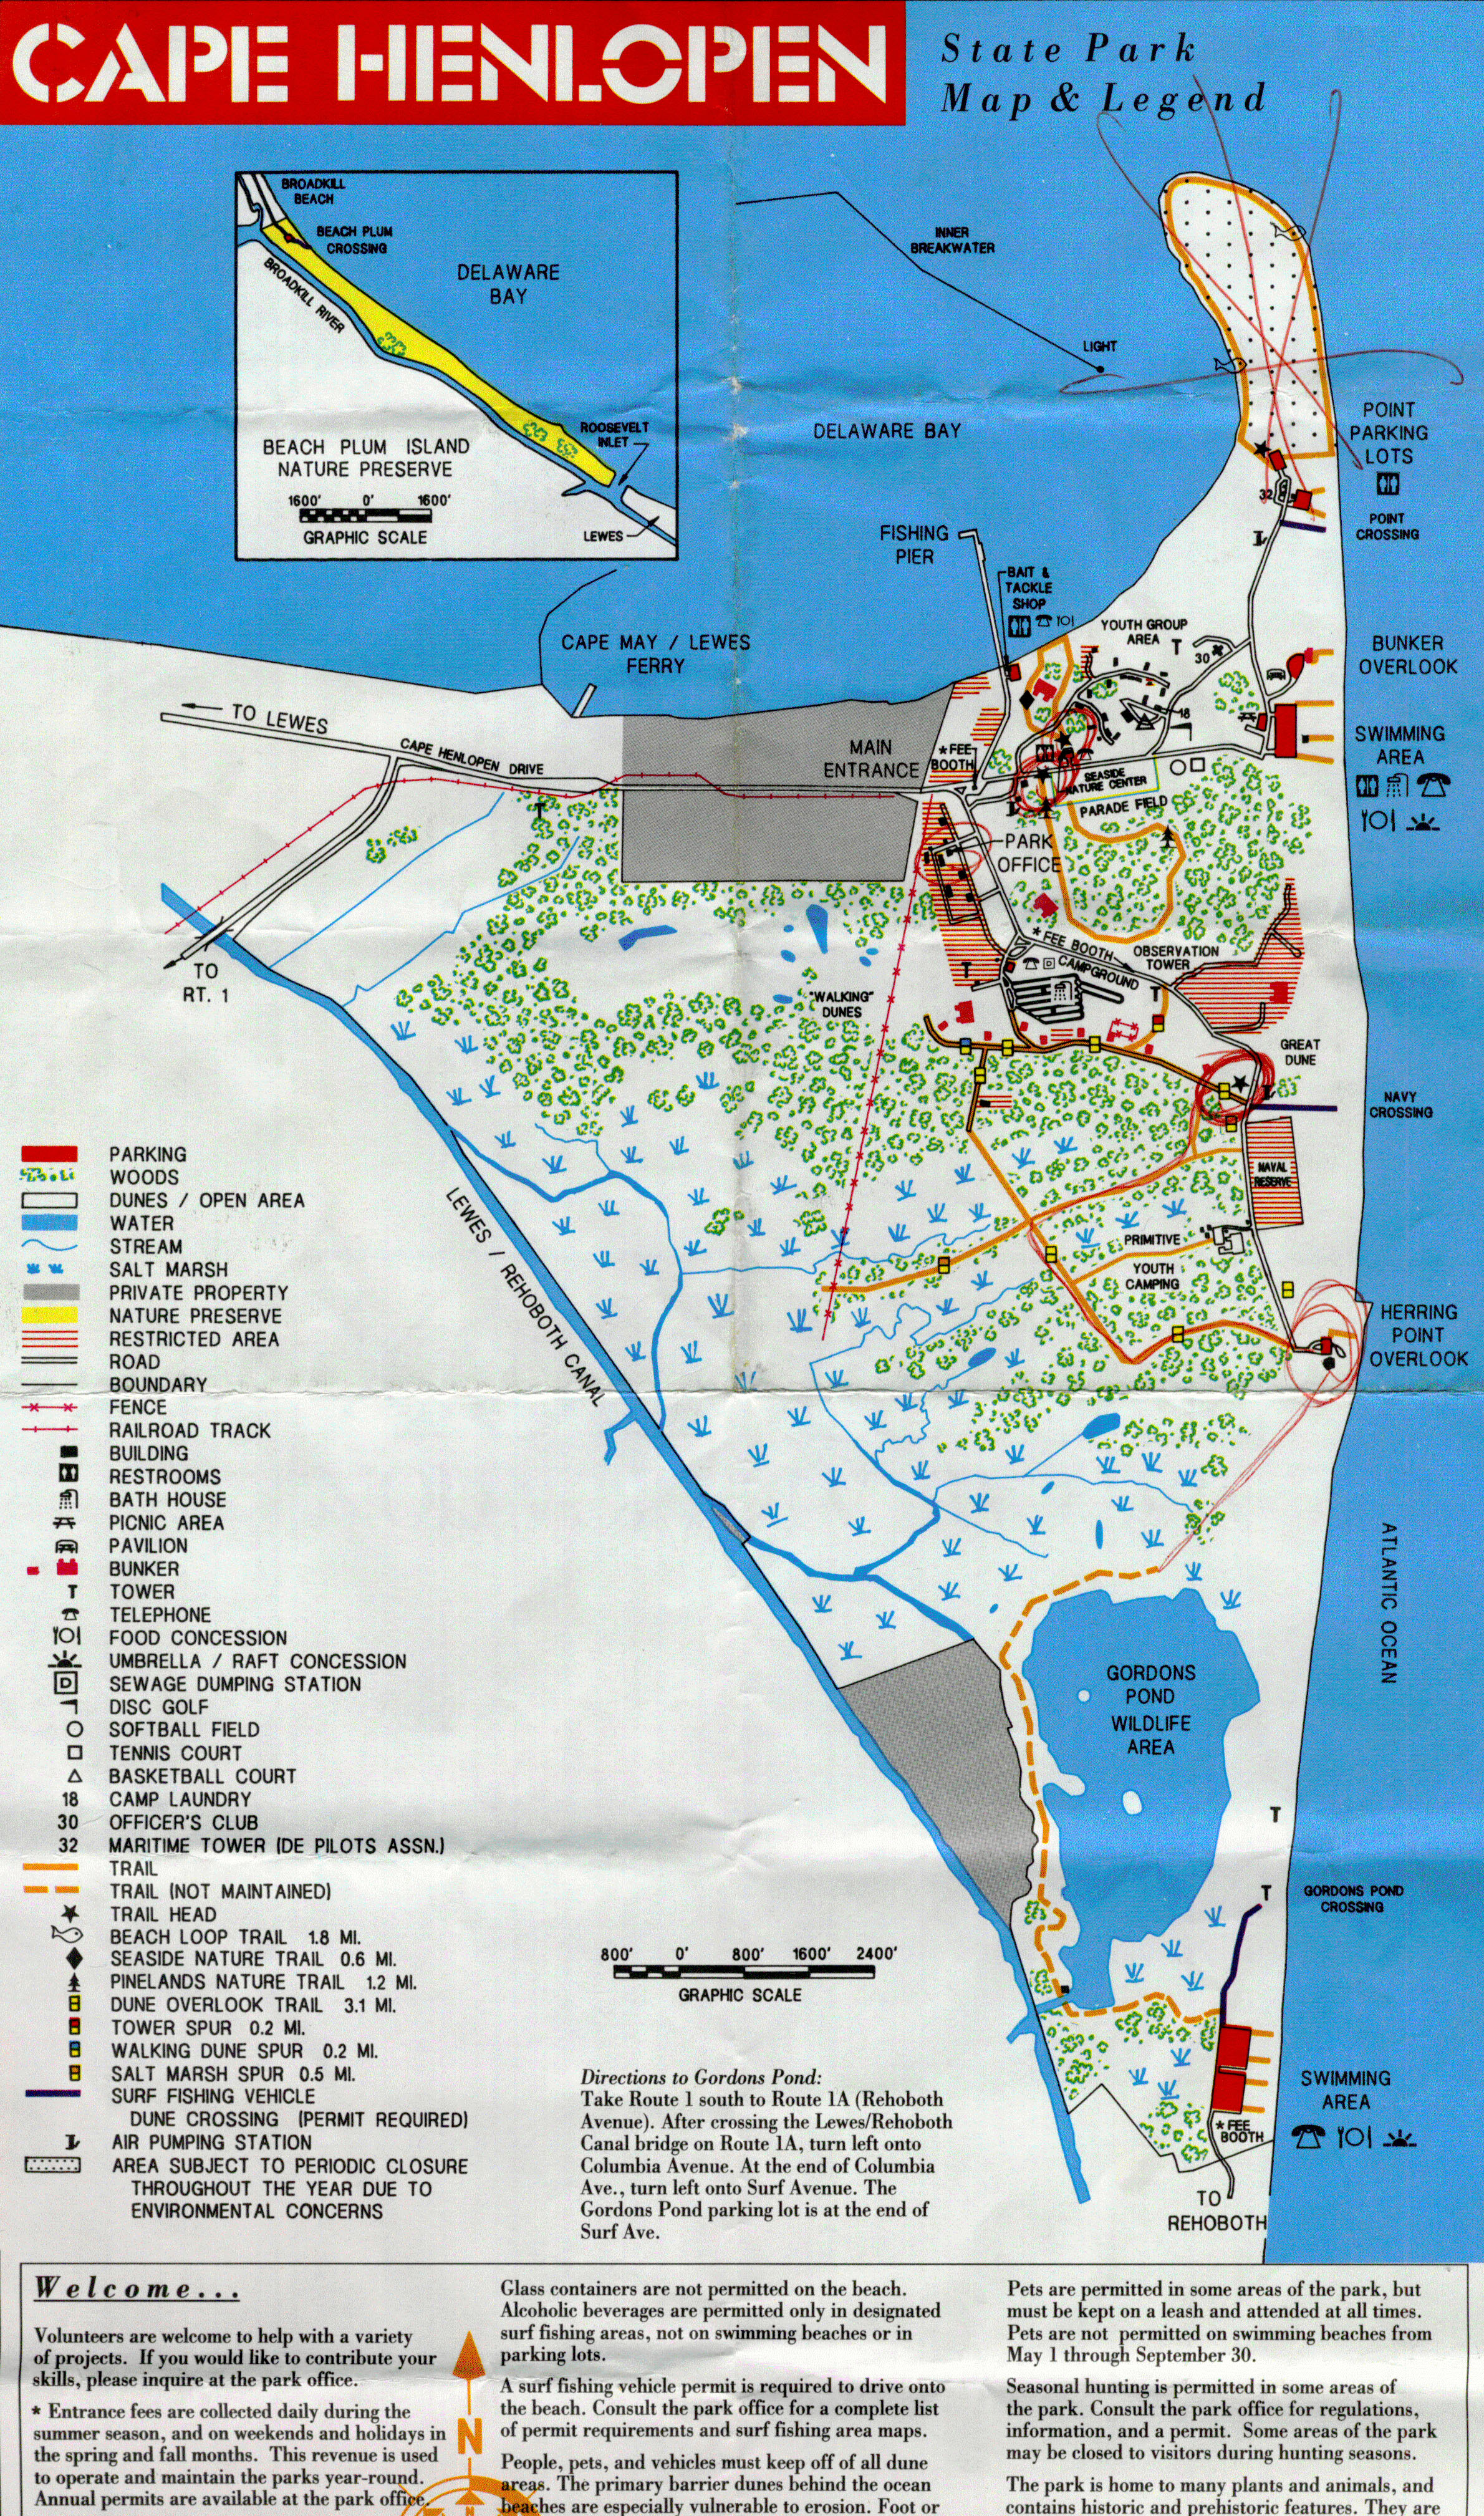 Cape Henlopen State Park Map | Rtlbreakfastclub on hamburg state park map, cedars of lebanon state park map, gordon's pond trail map, ellisville harbor state park map, cowans gap state park map, van damme state park map, white clay creek state park map, joseph davis state park map, world's end state park map, hyner run state park map, valley of fire state park map, carson park map, long branch state park map, whipple dam state park map, brandywine state park map, pine grove furnace state park map, delaware and raritan canal state park map, cape romain national wildlife refuge map, anza-borrego desert state park map, hummel park map,